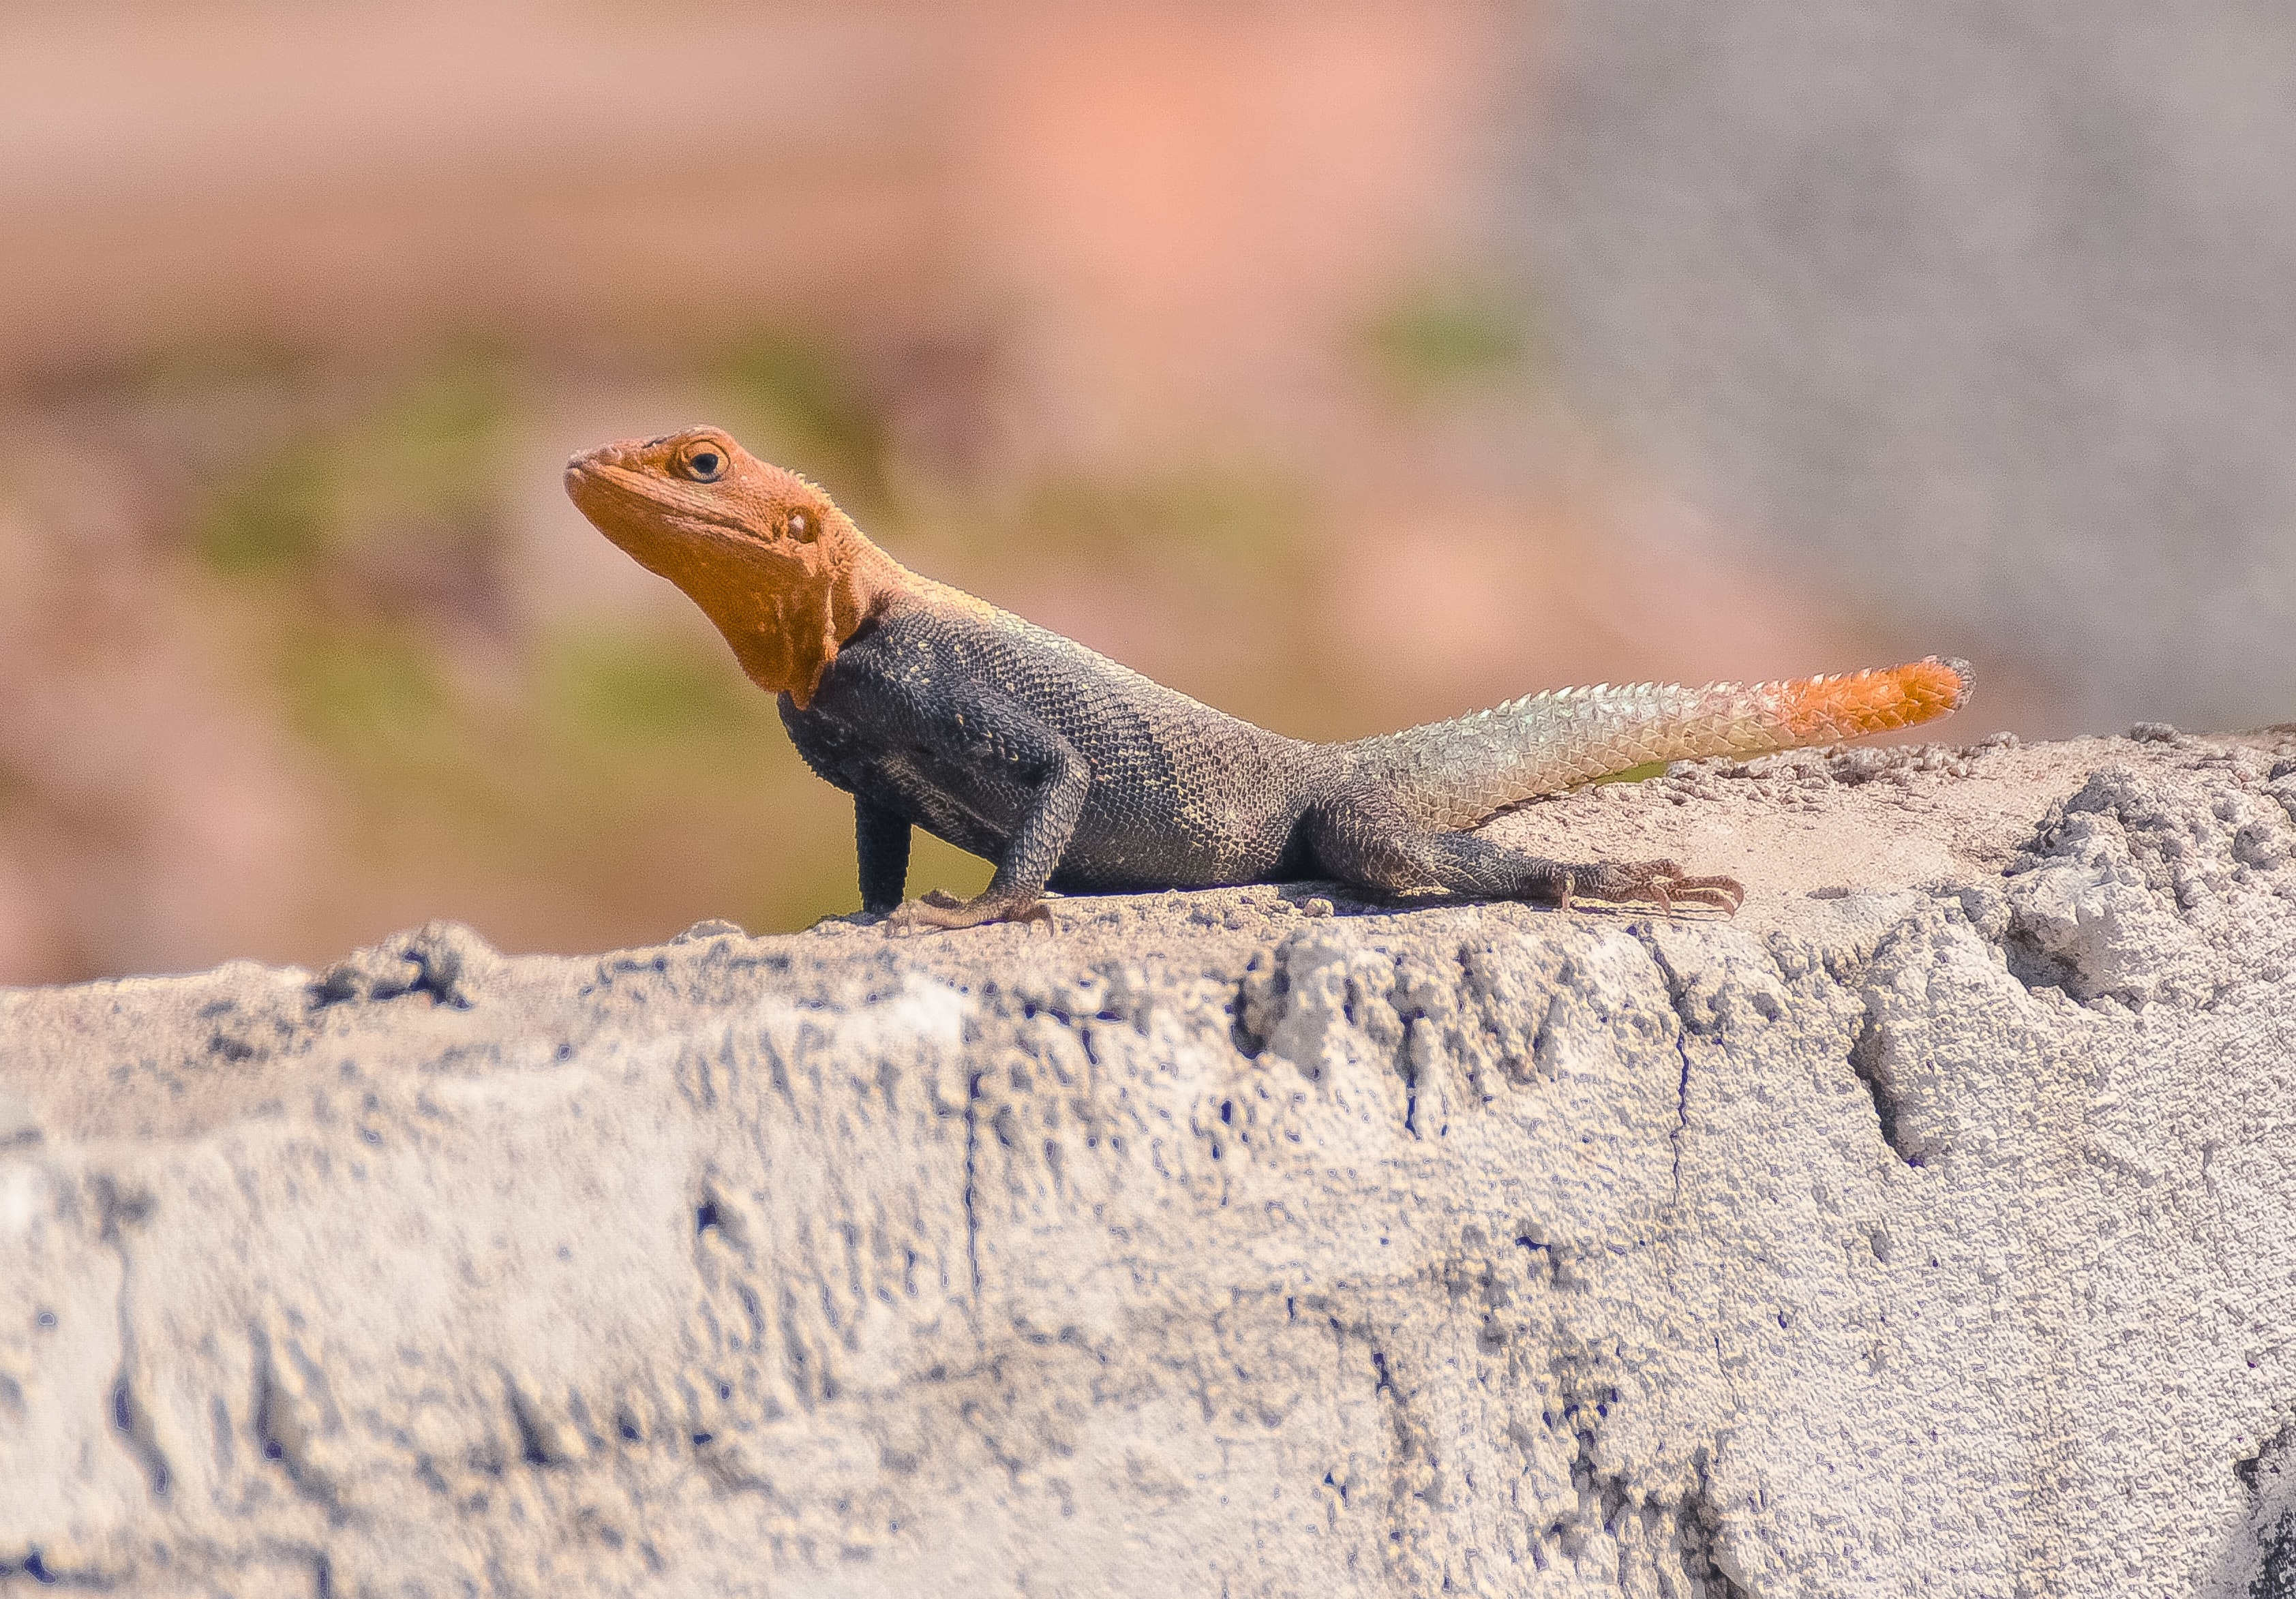 A lizard with an orange head and tail and a black body on a stone wall